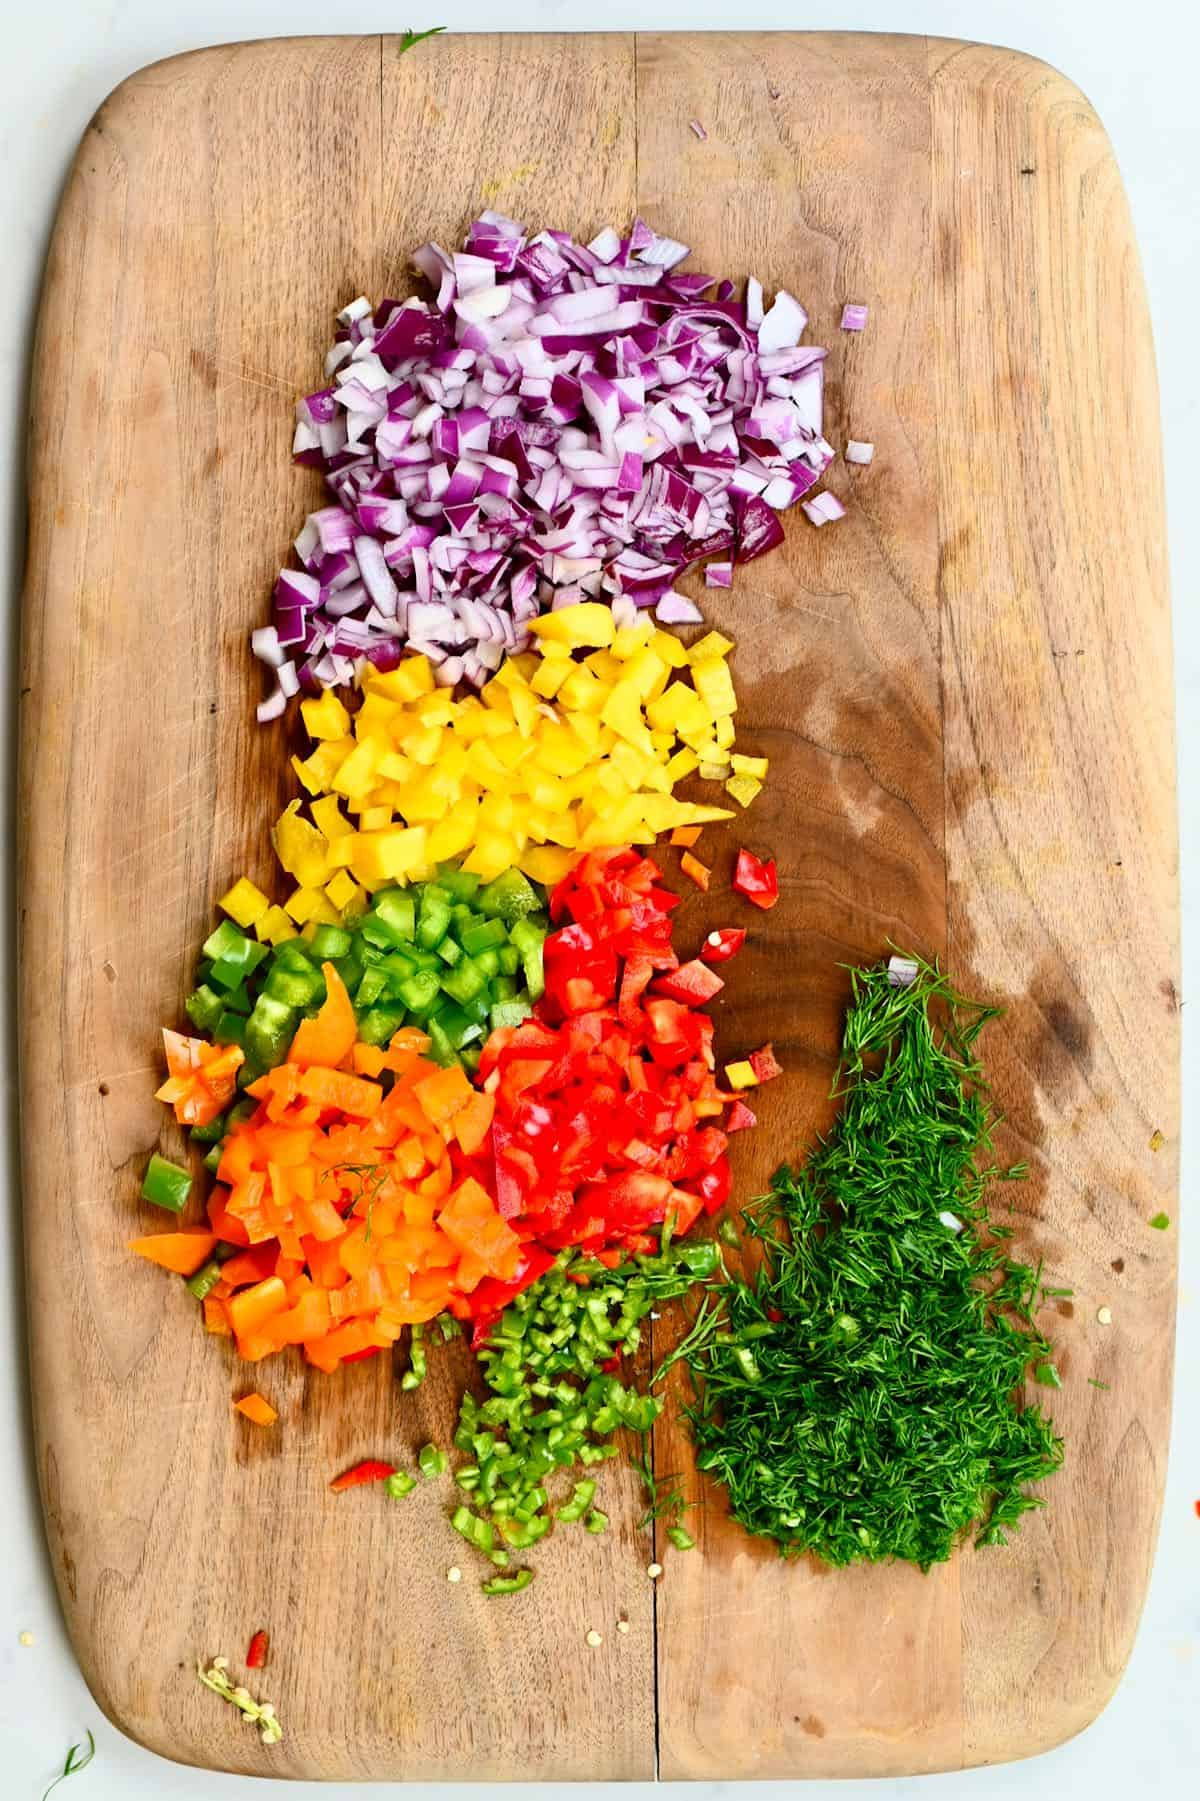 chopped veggies on a wooden board